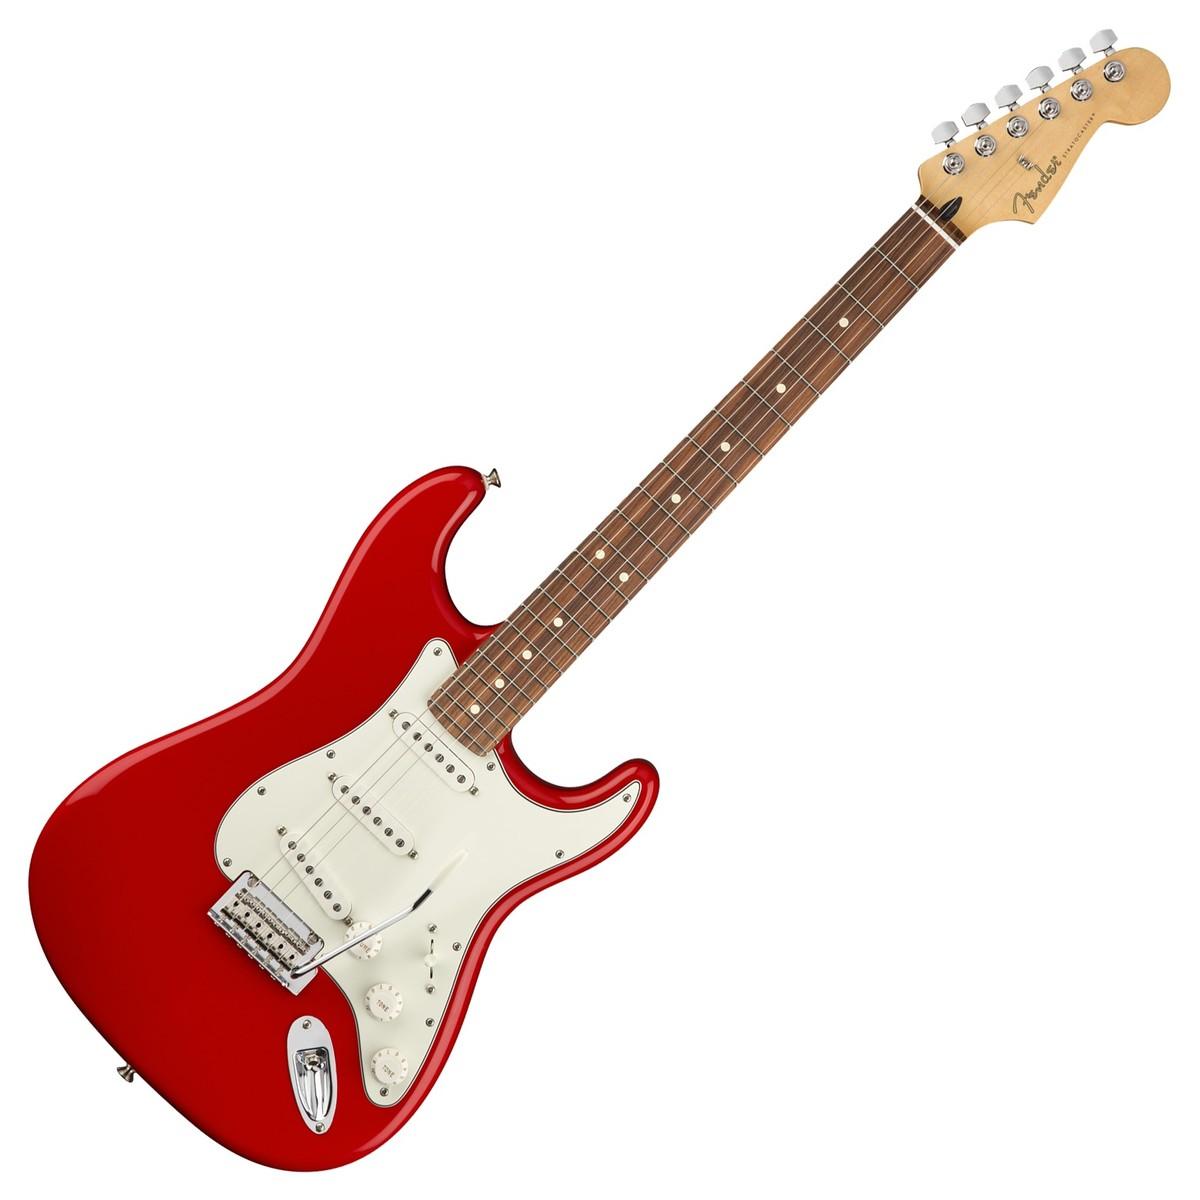 fender player stratocaster pf sonic red at gear4music. Black Bedroom Furniture Sets. Home Design Ideas